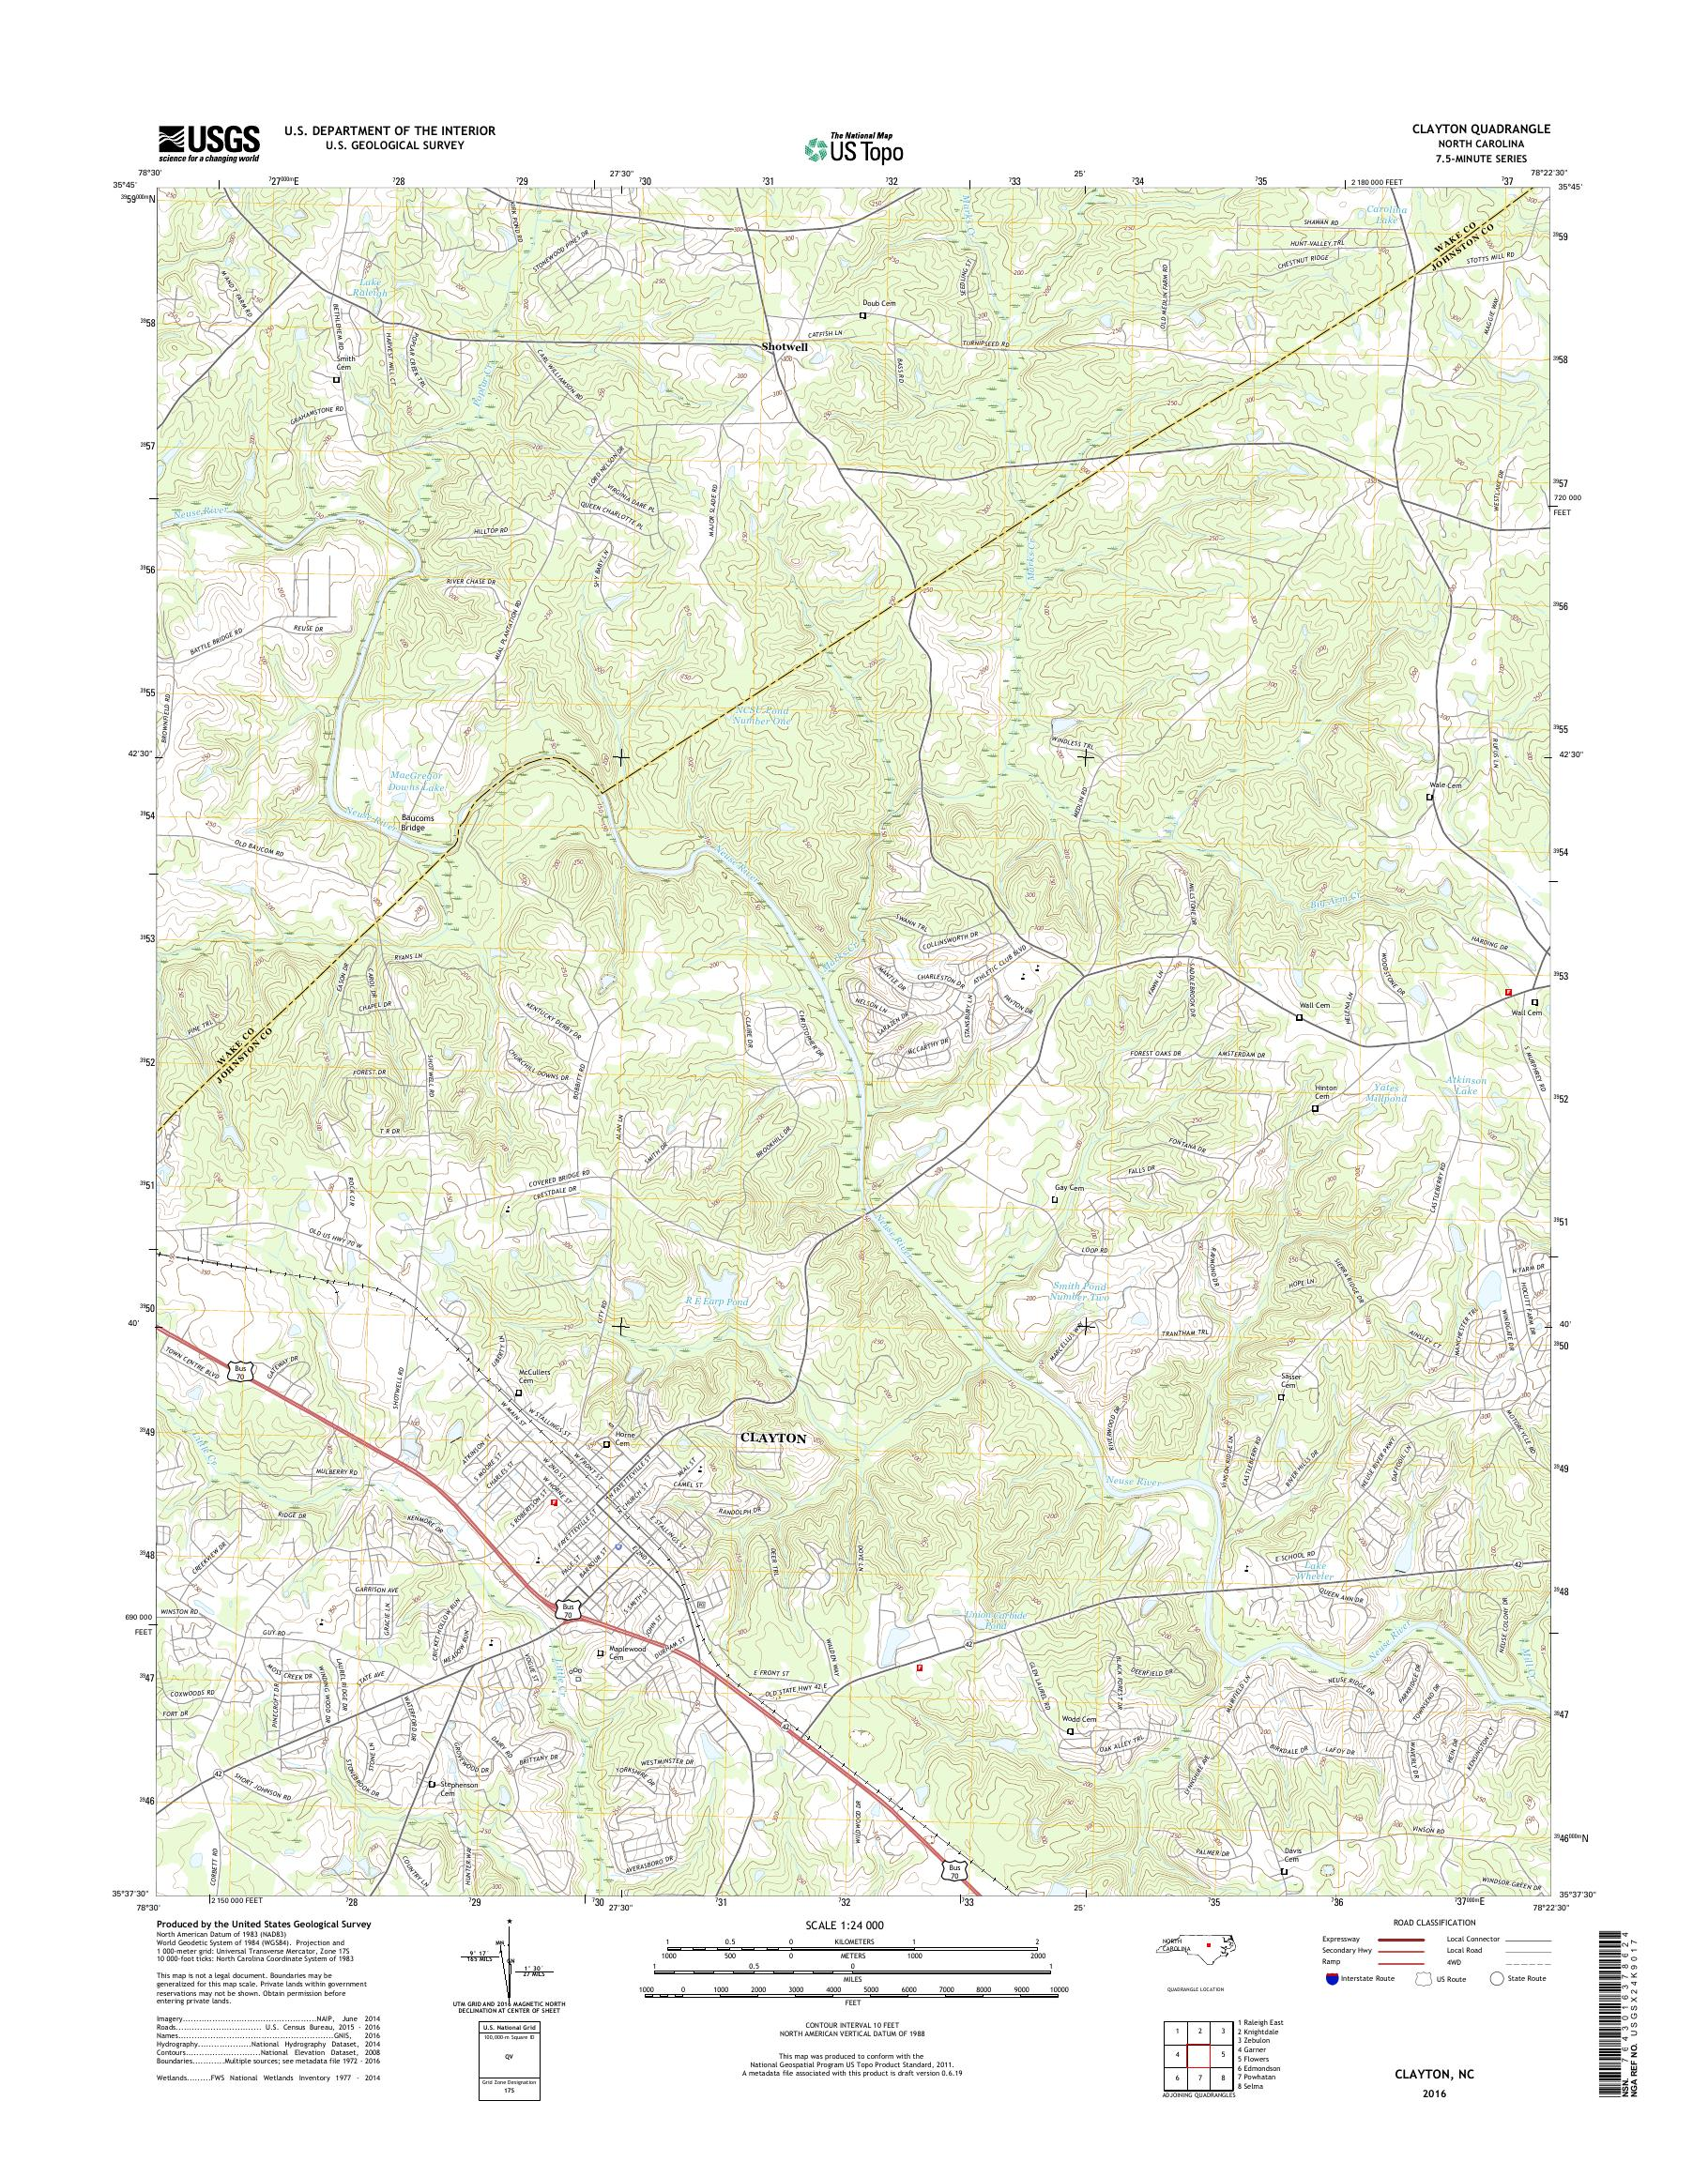 MyTopo Clayton, North Carolina USGS Quad Topo Map on